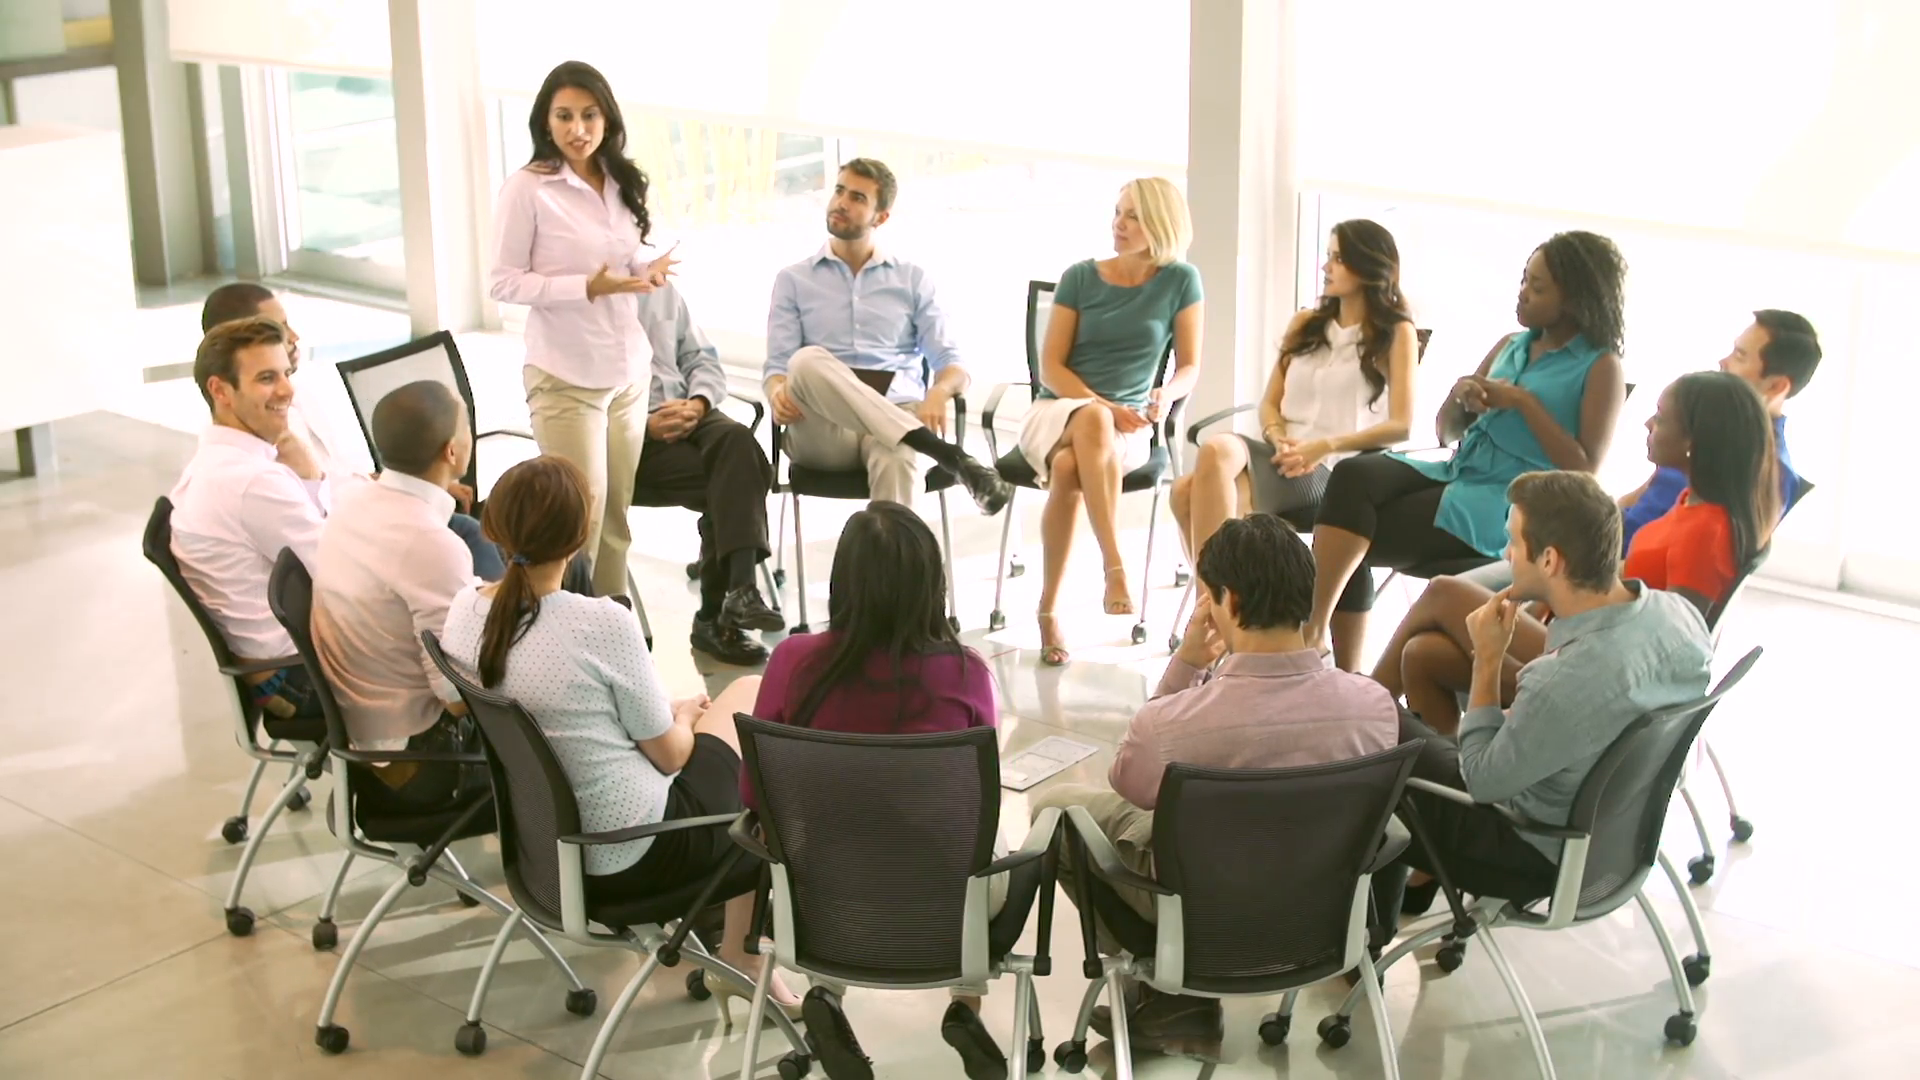 support-group-meeting-with-people-seated-in-circle-of-chairs_ejai-iof__F0000.png